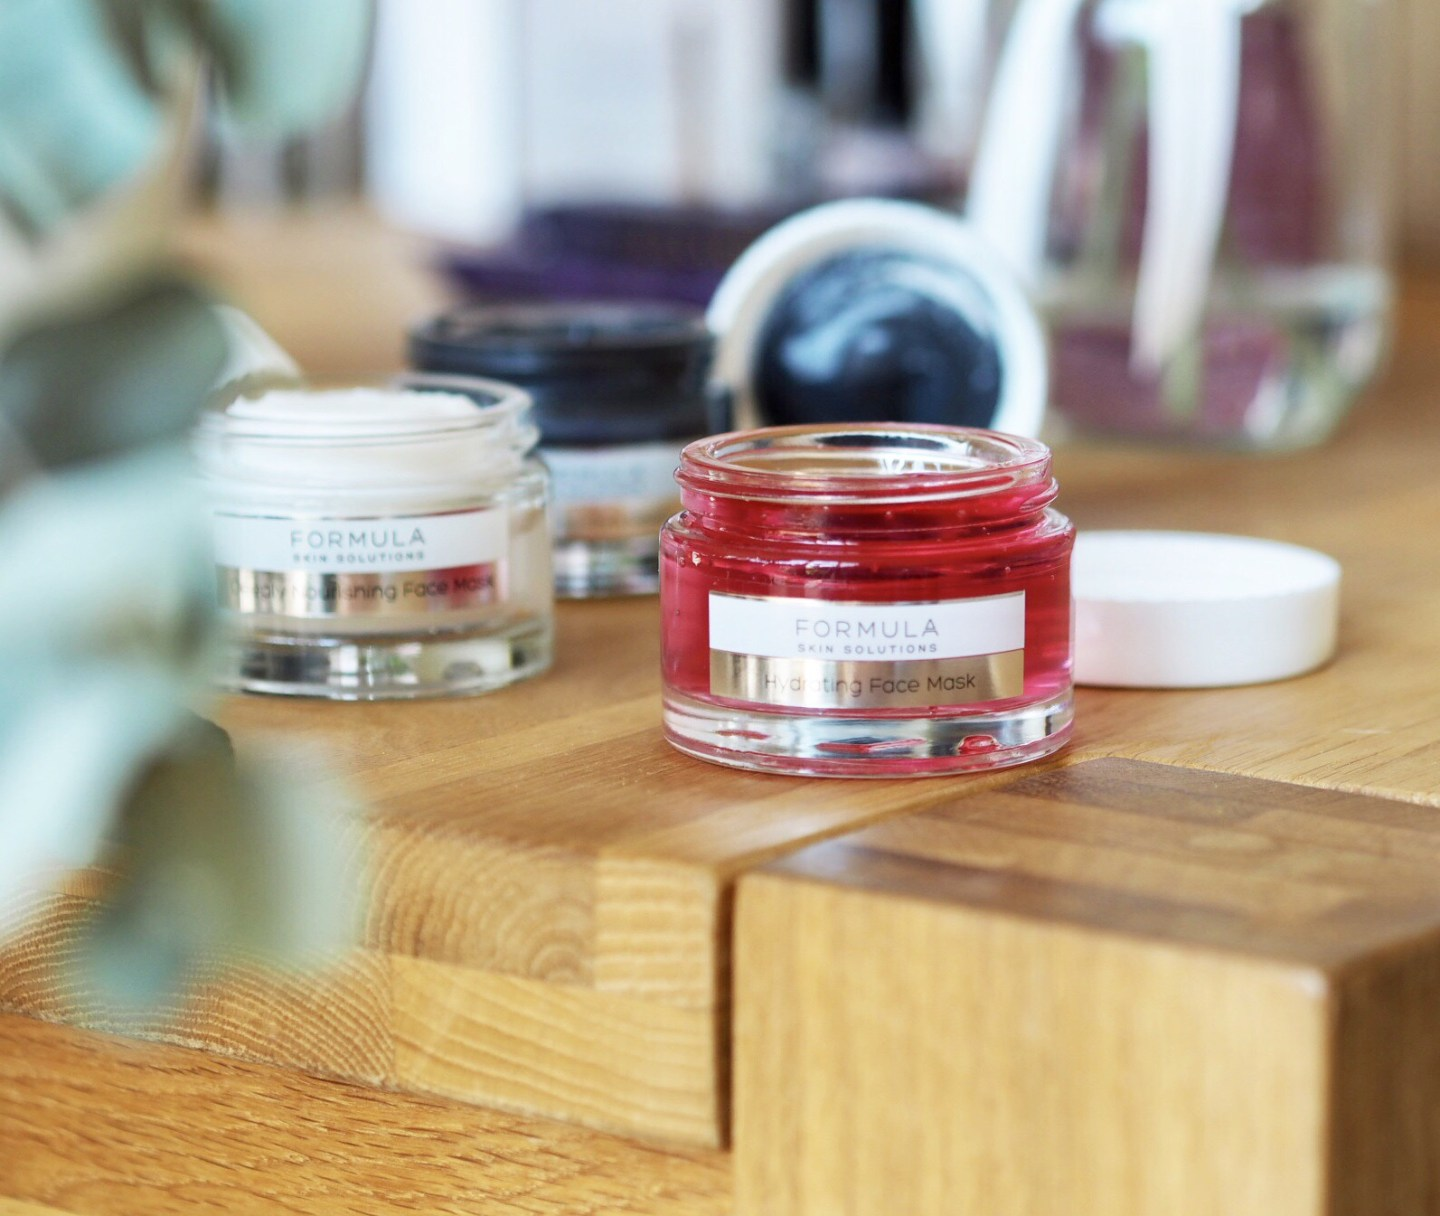 5 Reasons To Fall In Love With Marks & Spencer The Beauty Spyglass